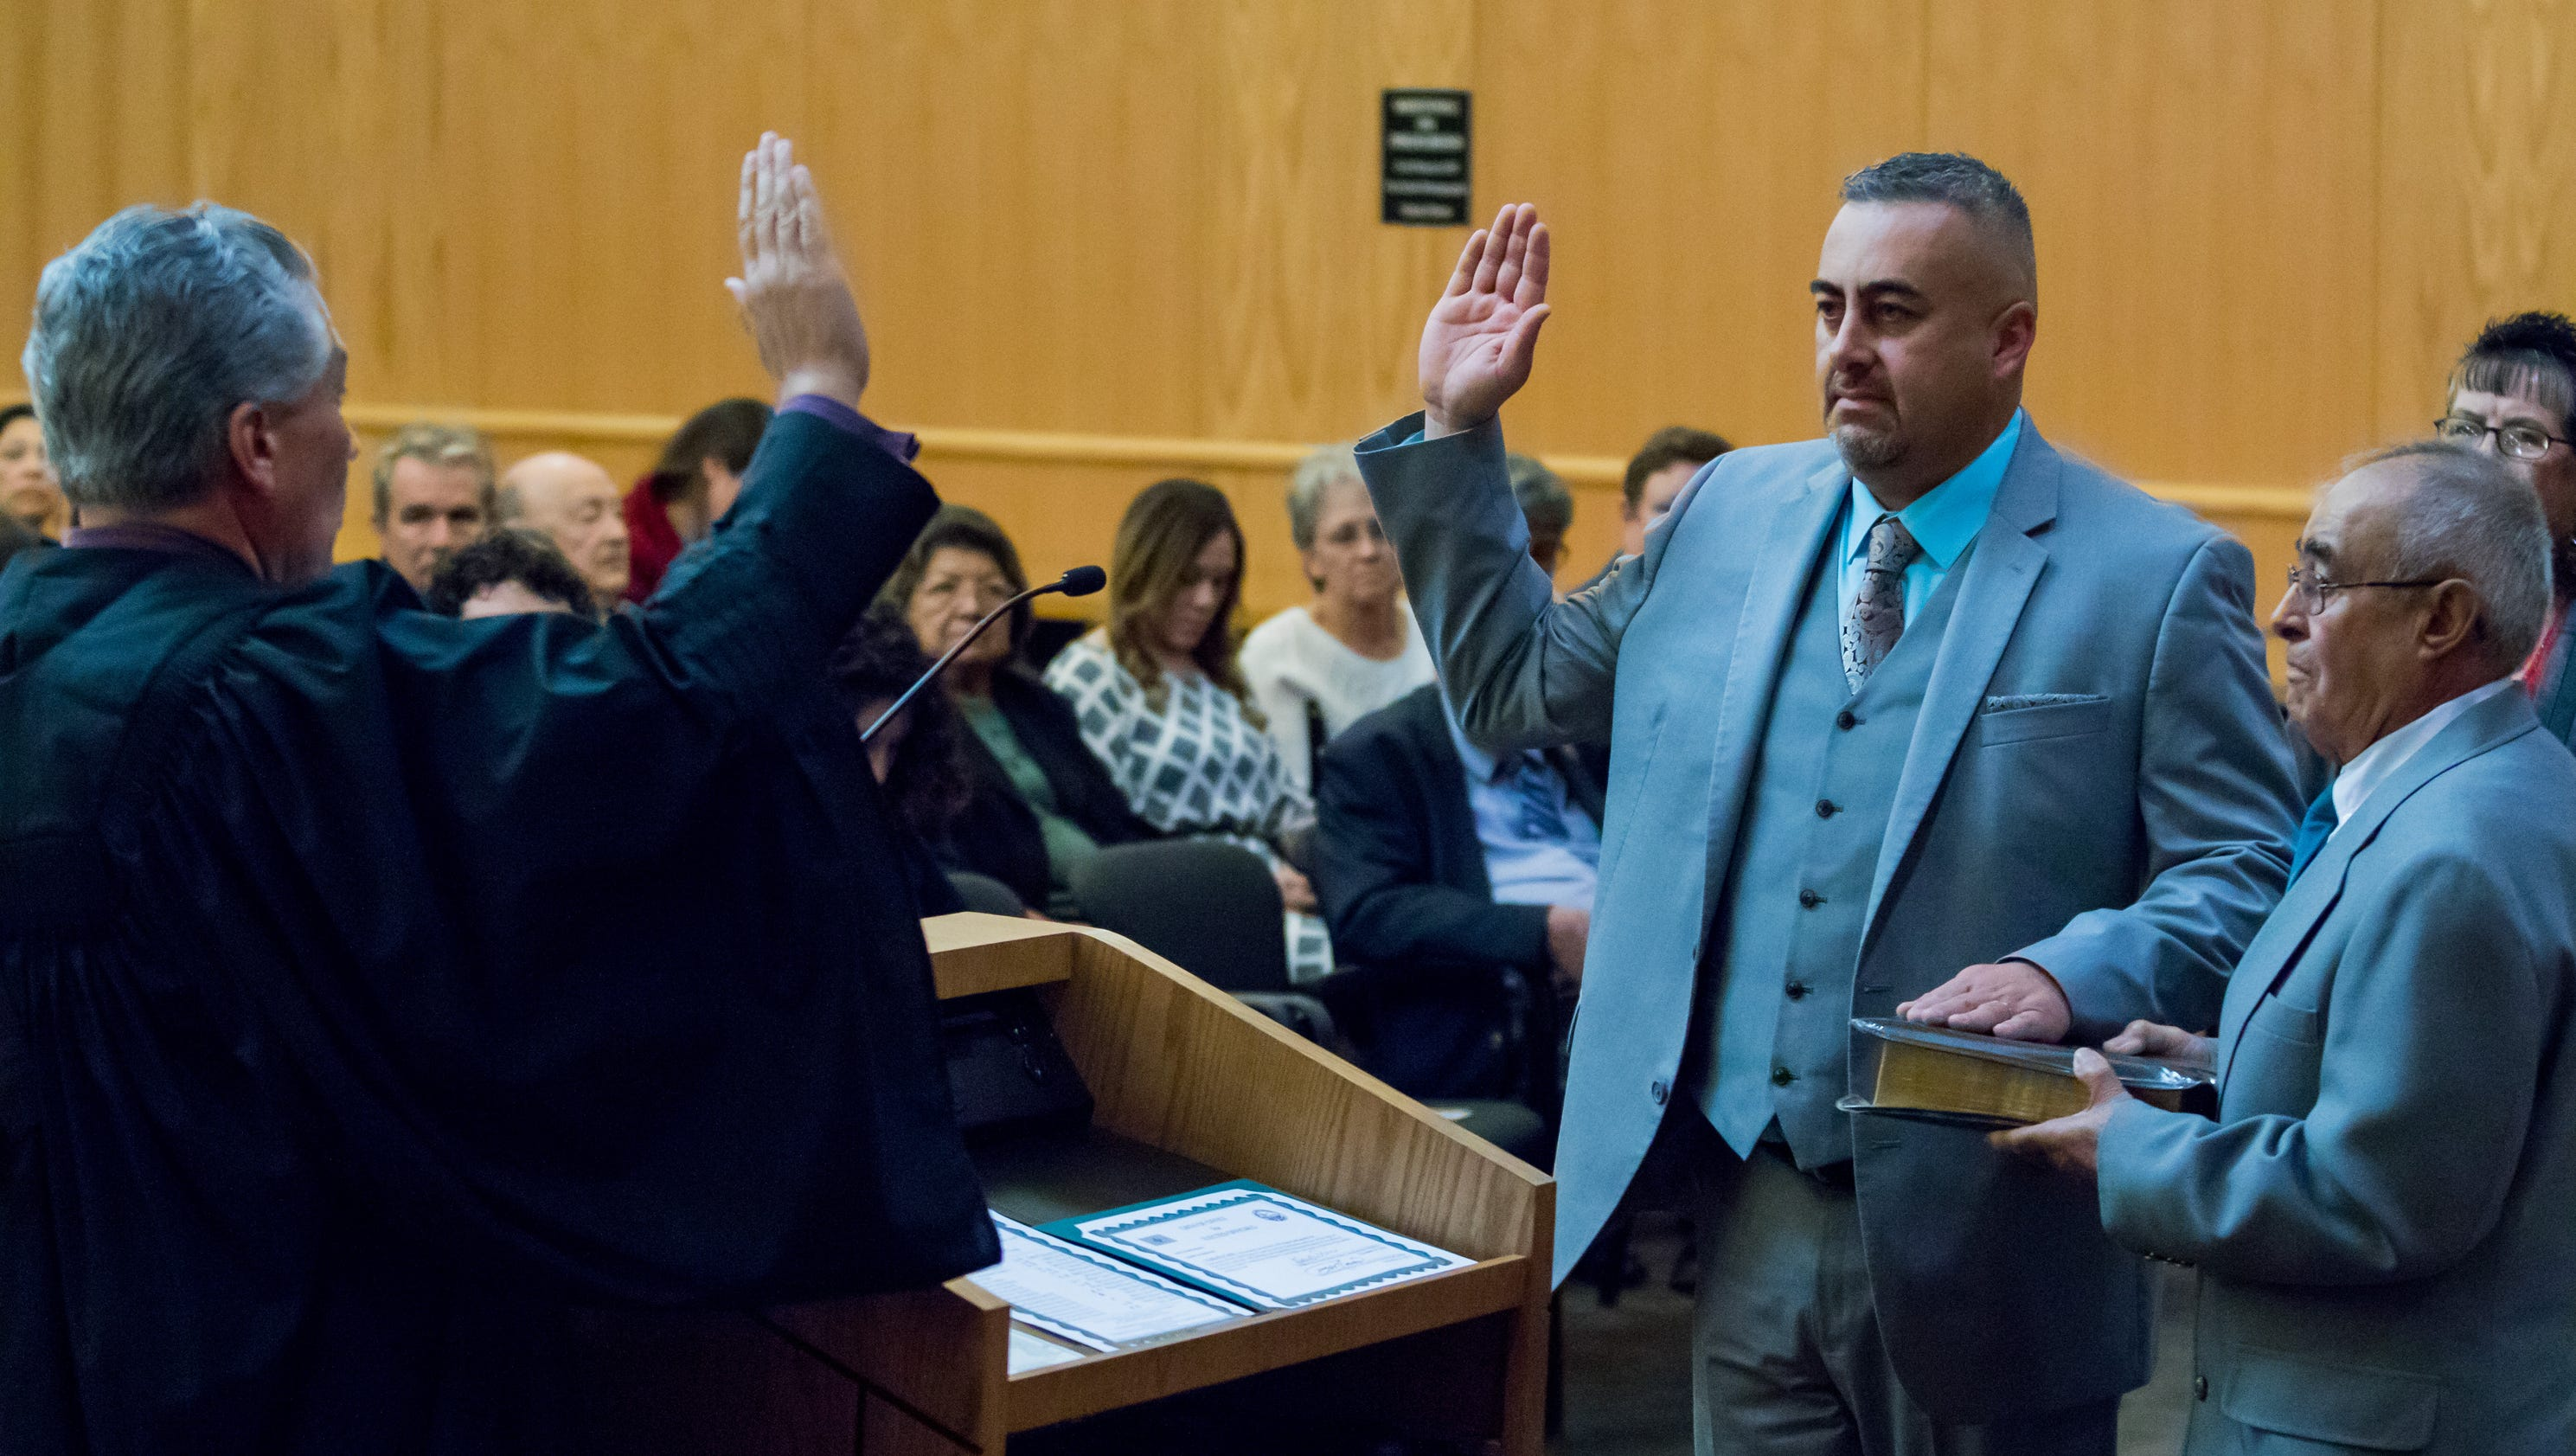 meet dona ana county singles The board of county commissioners sets policy for the governance of doña ana  county the doña ana county board of commissioners regularly meets on the.